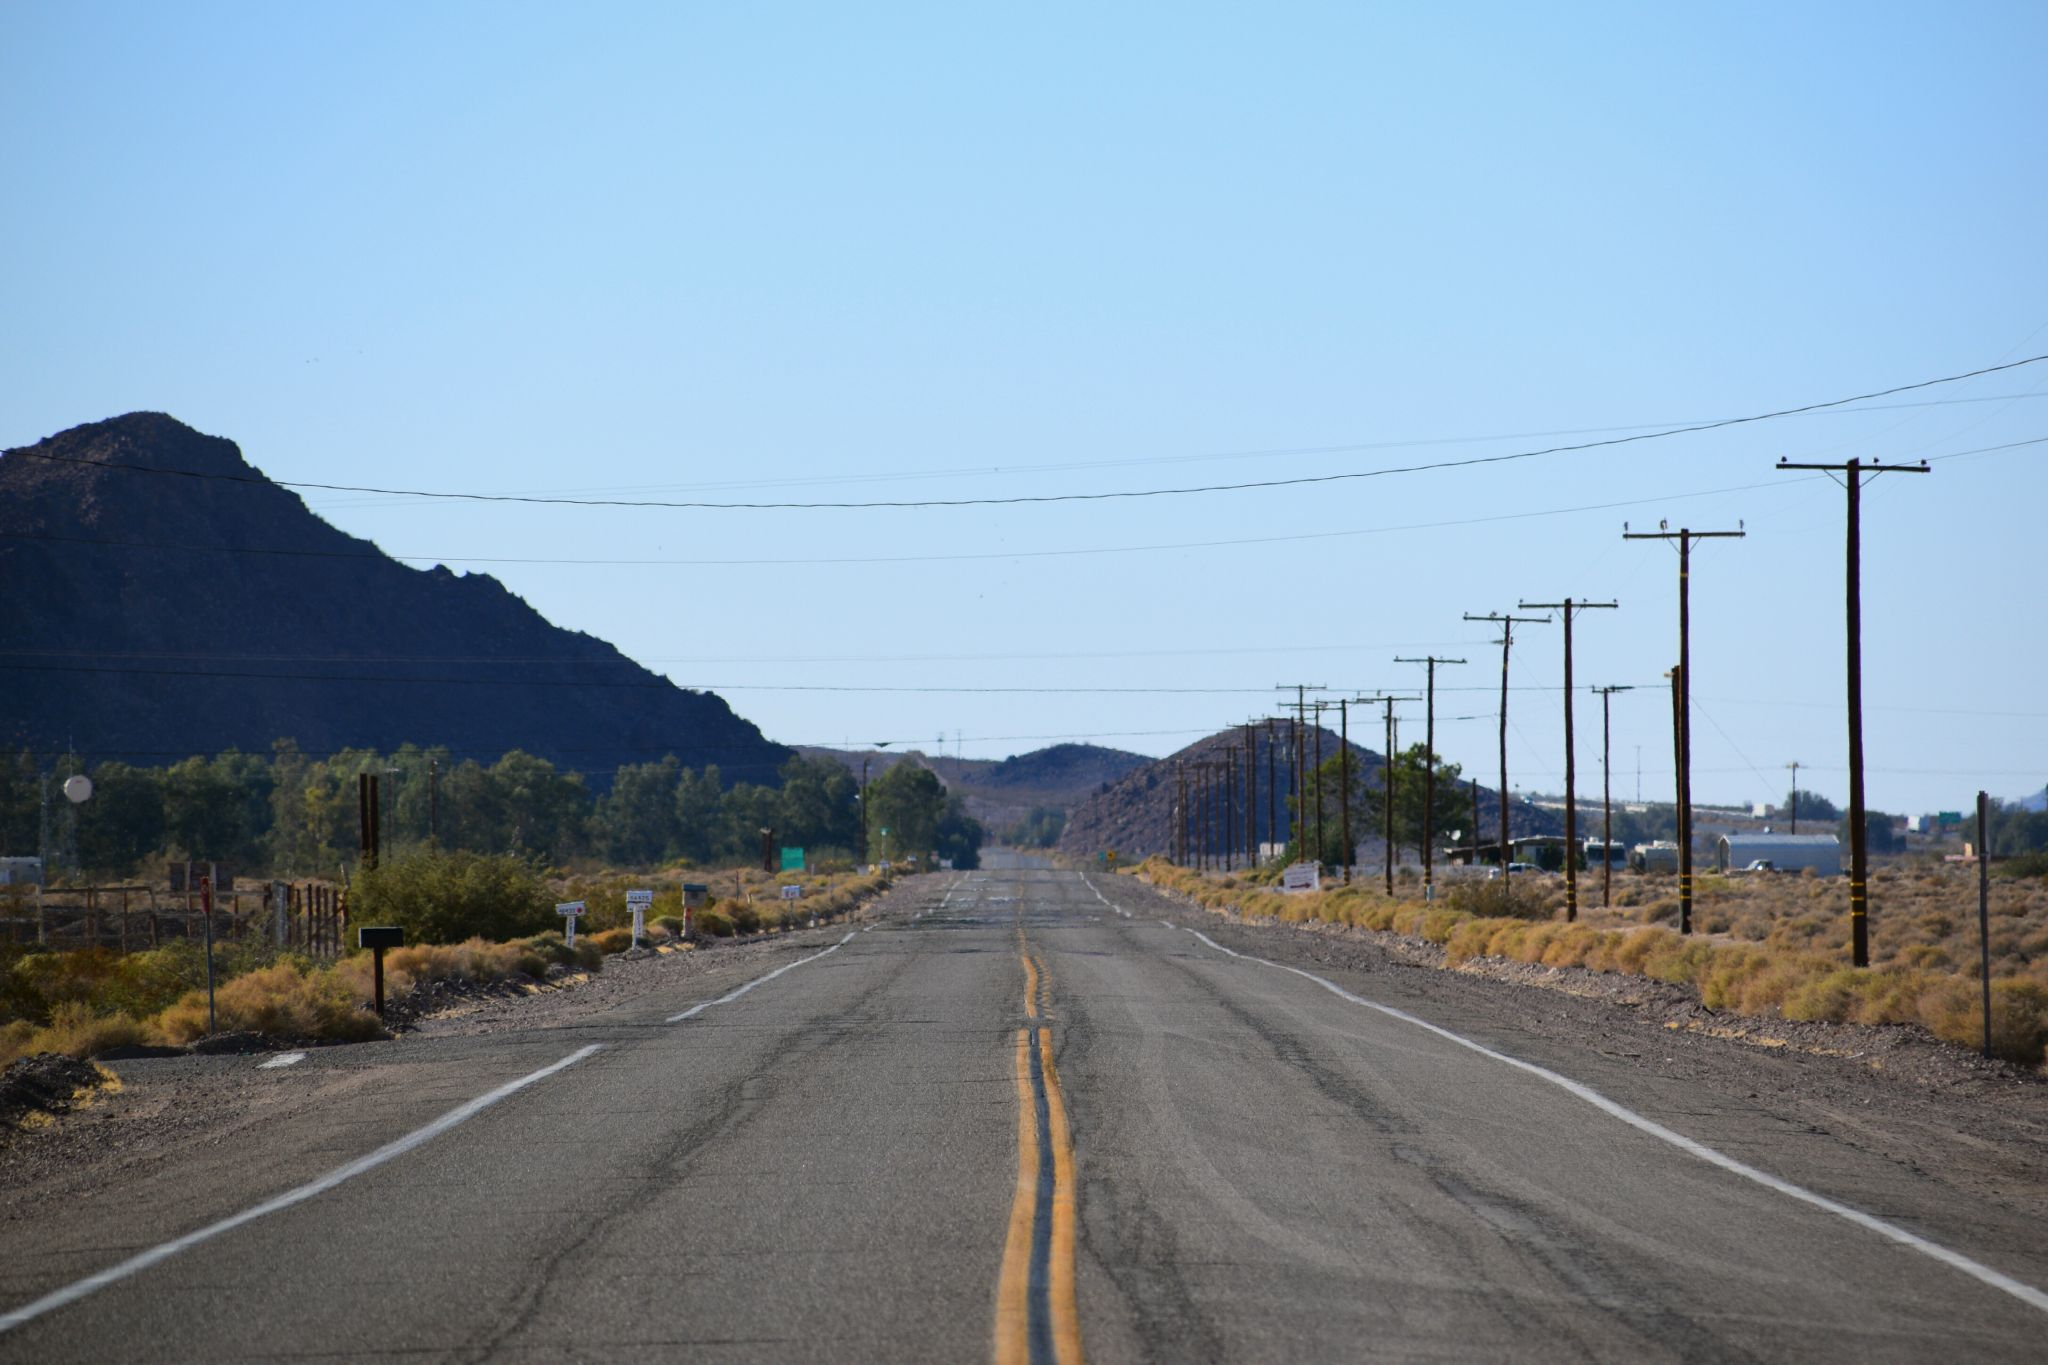 Route 66 on the Mojave Desert, USA